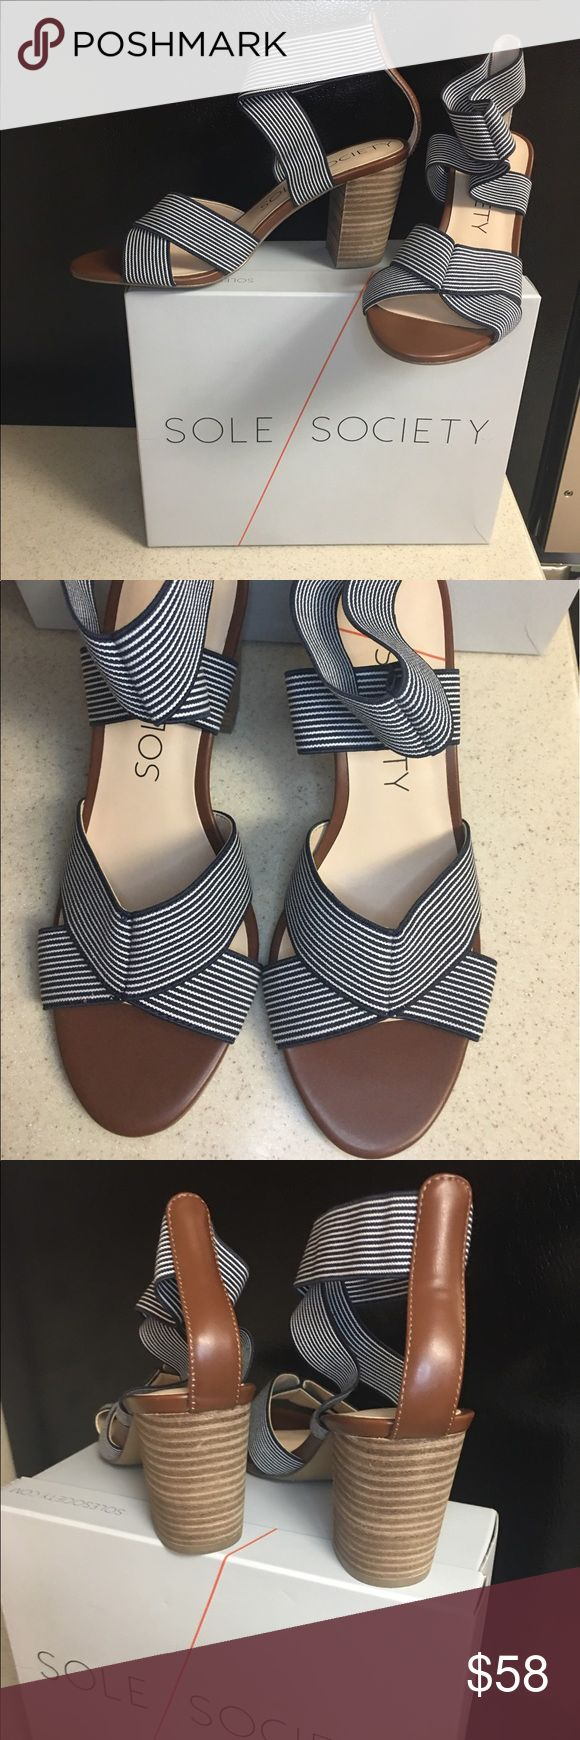 "Sole Society So-Josey sandals NWOT Beautiful brand new in box sandals!! Navy and white stretchy straps, whiskey colored leather and 3"" stacked wood heel. Dang ... didn't get them retuned on time!! These have a very classic and nautical vibe. Sole Society Shoes Slippers"